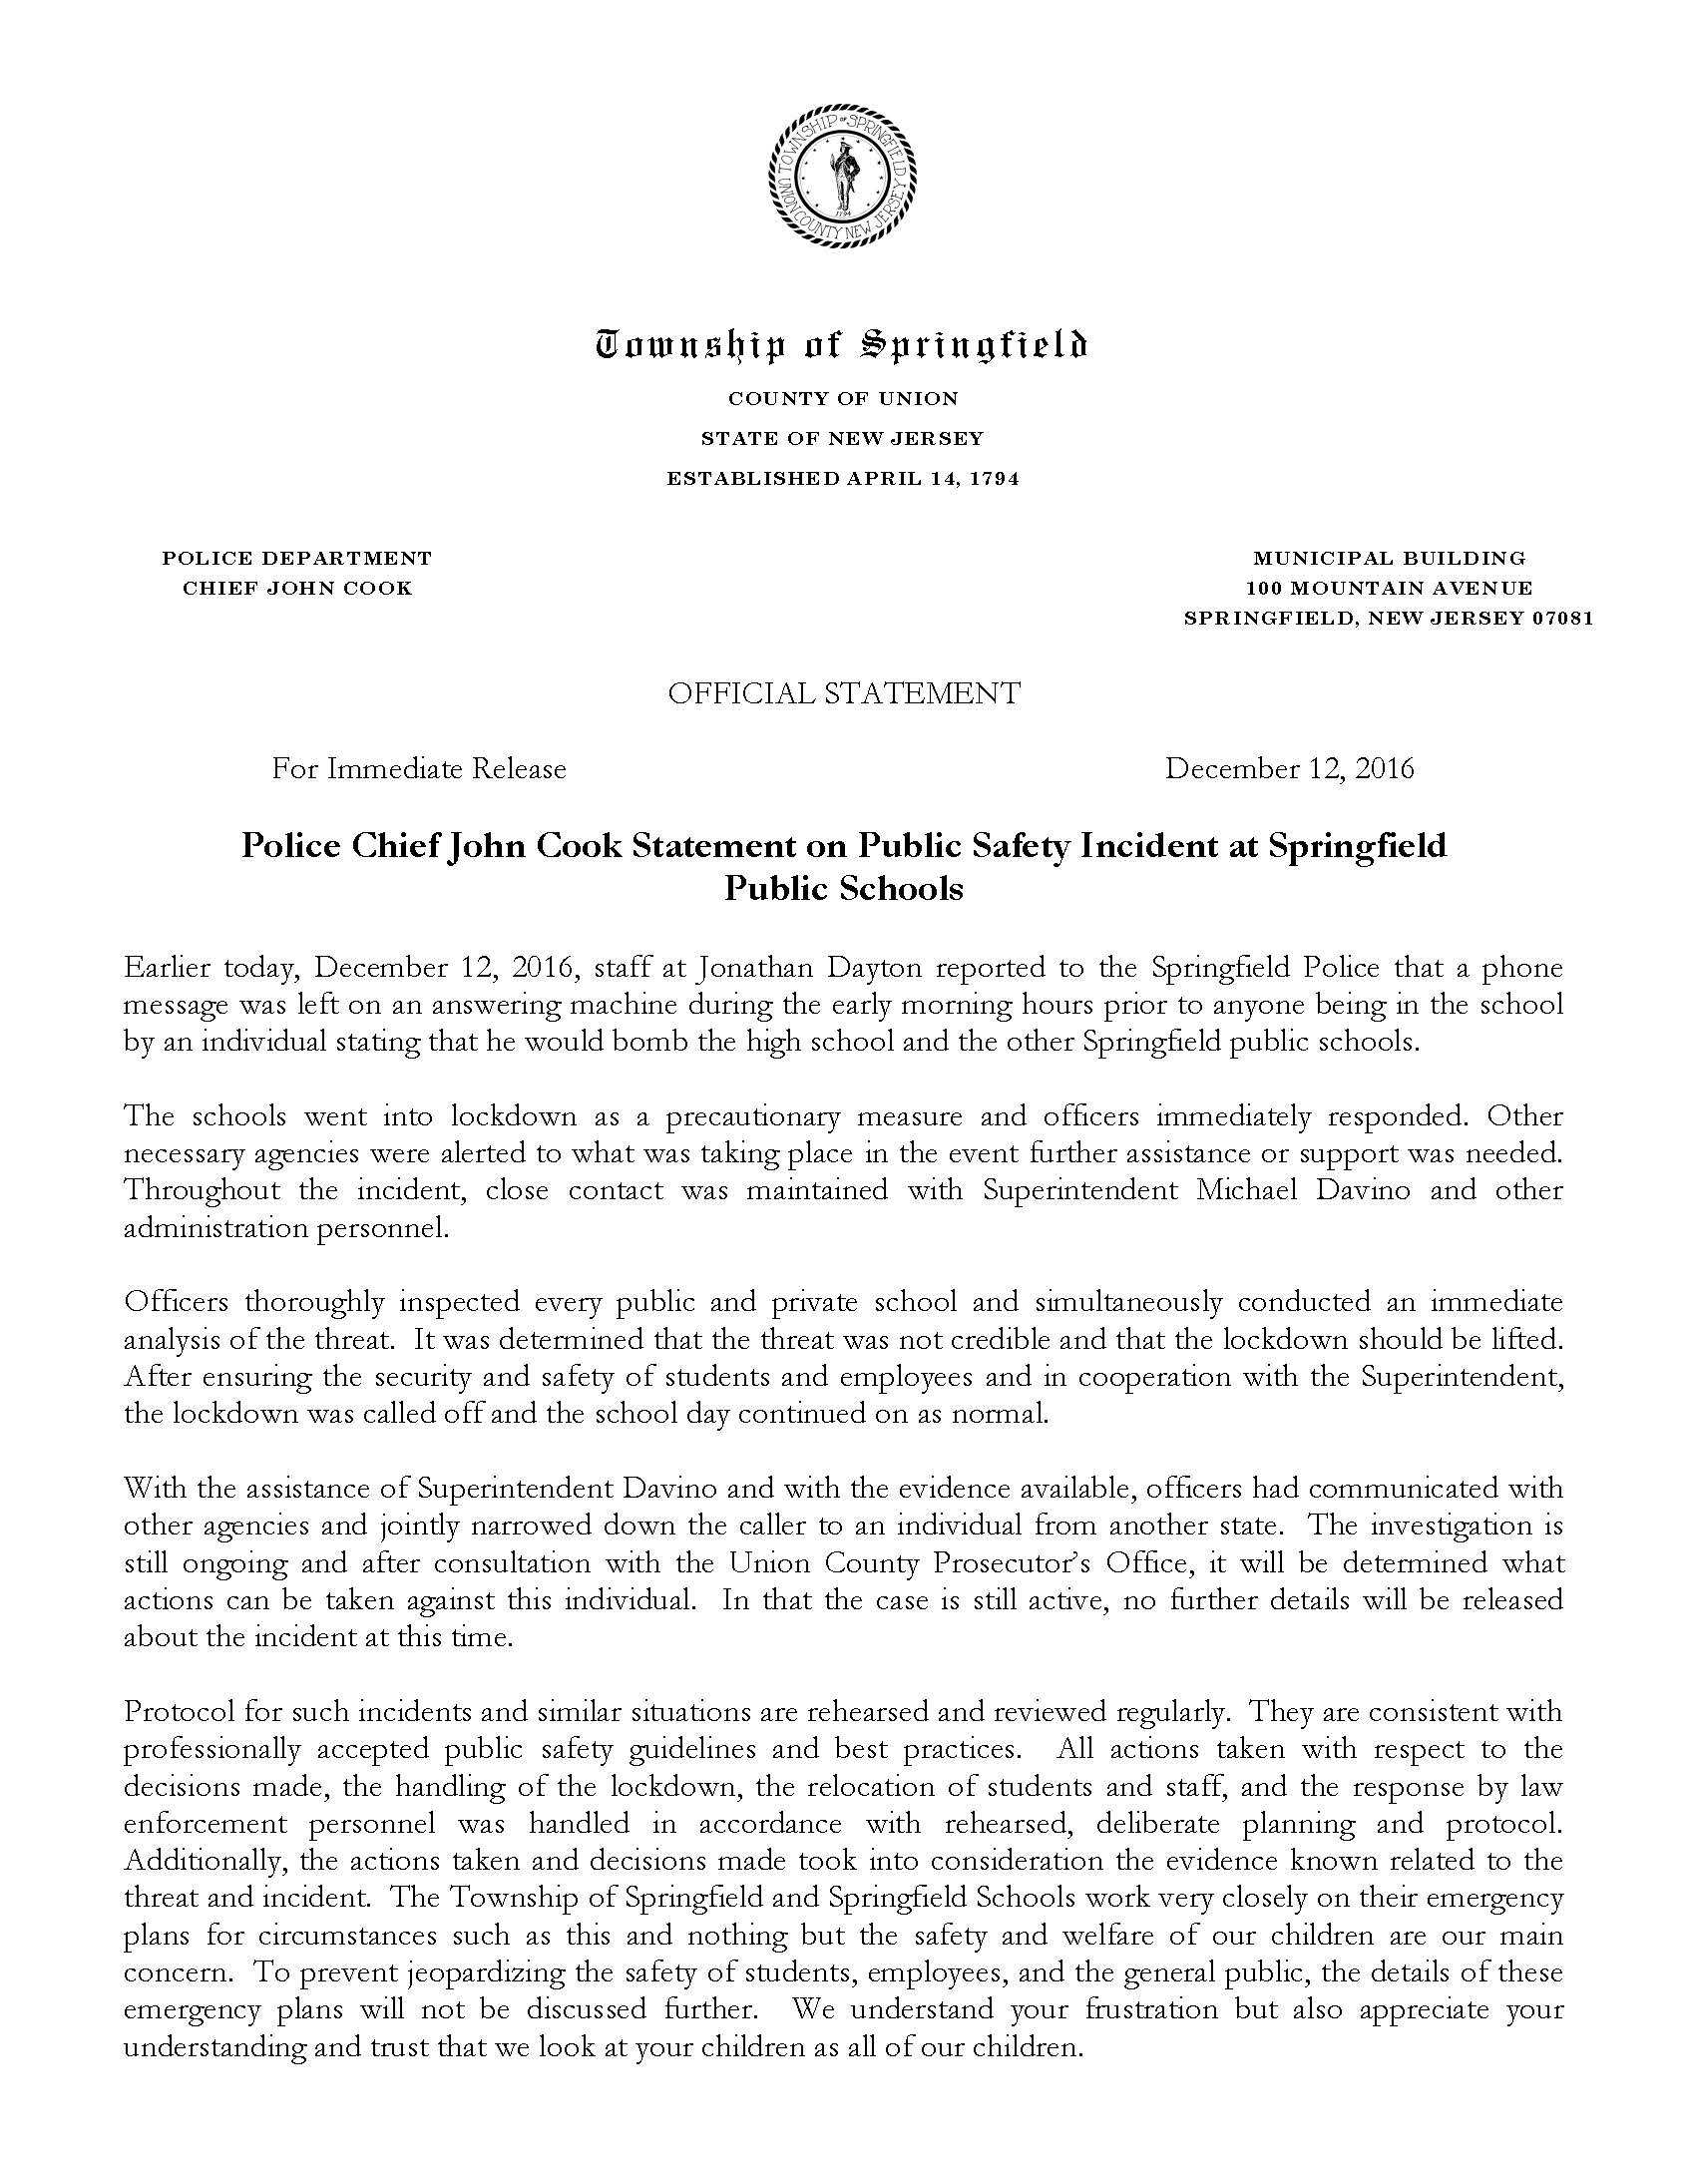 law-public-safety-police-20161212-springfield-public-schools-incident-statement